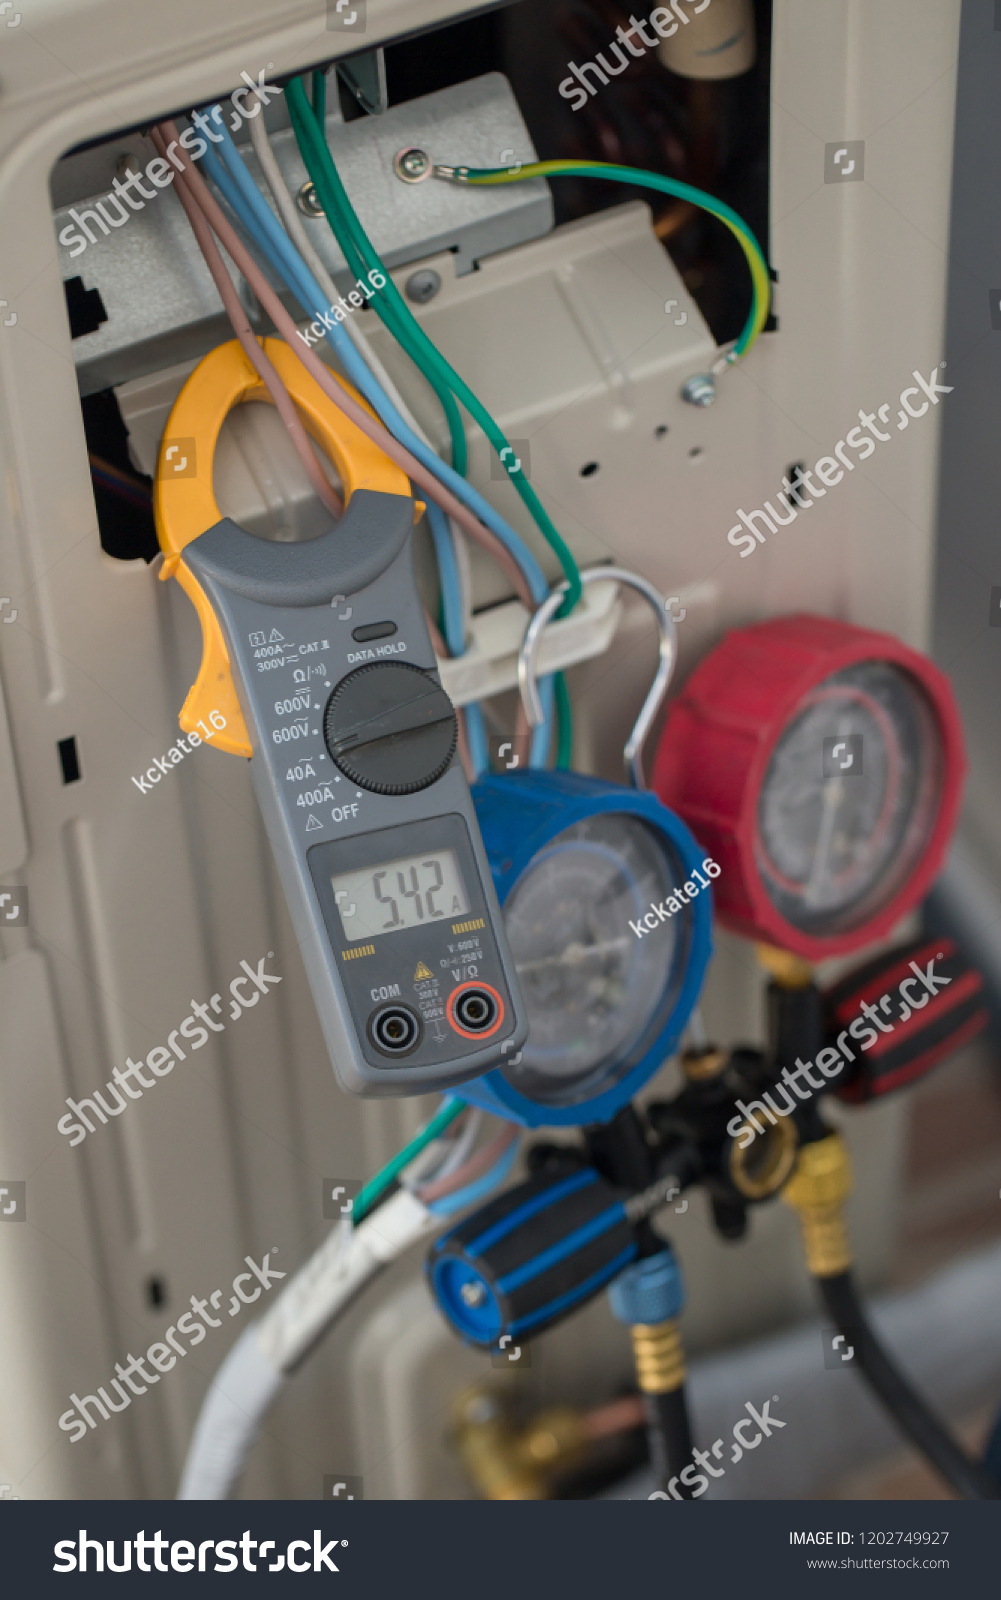 hight resolution of clamp amp meter electrician use clamp amp meter for check or measureing the current of